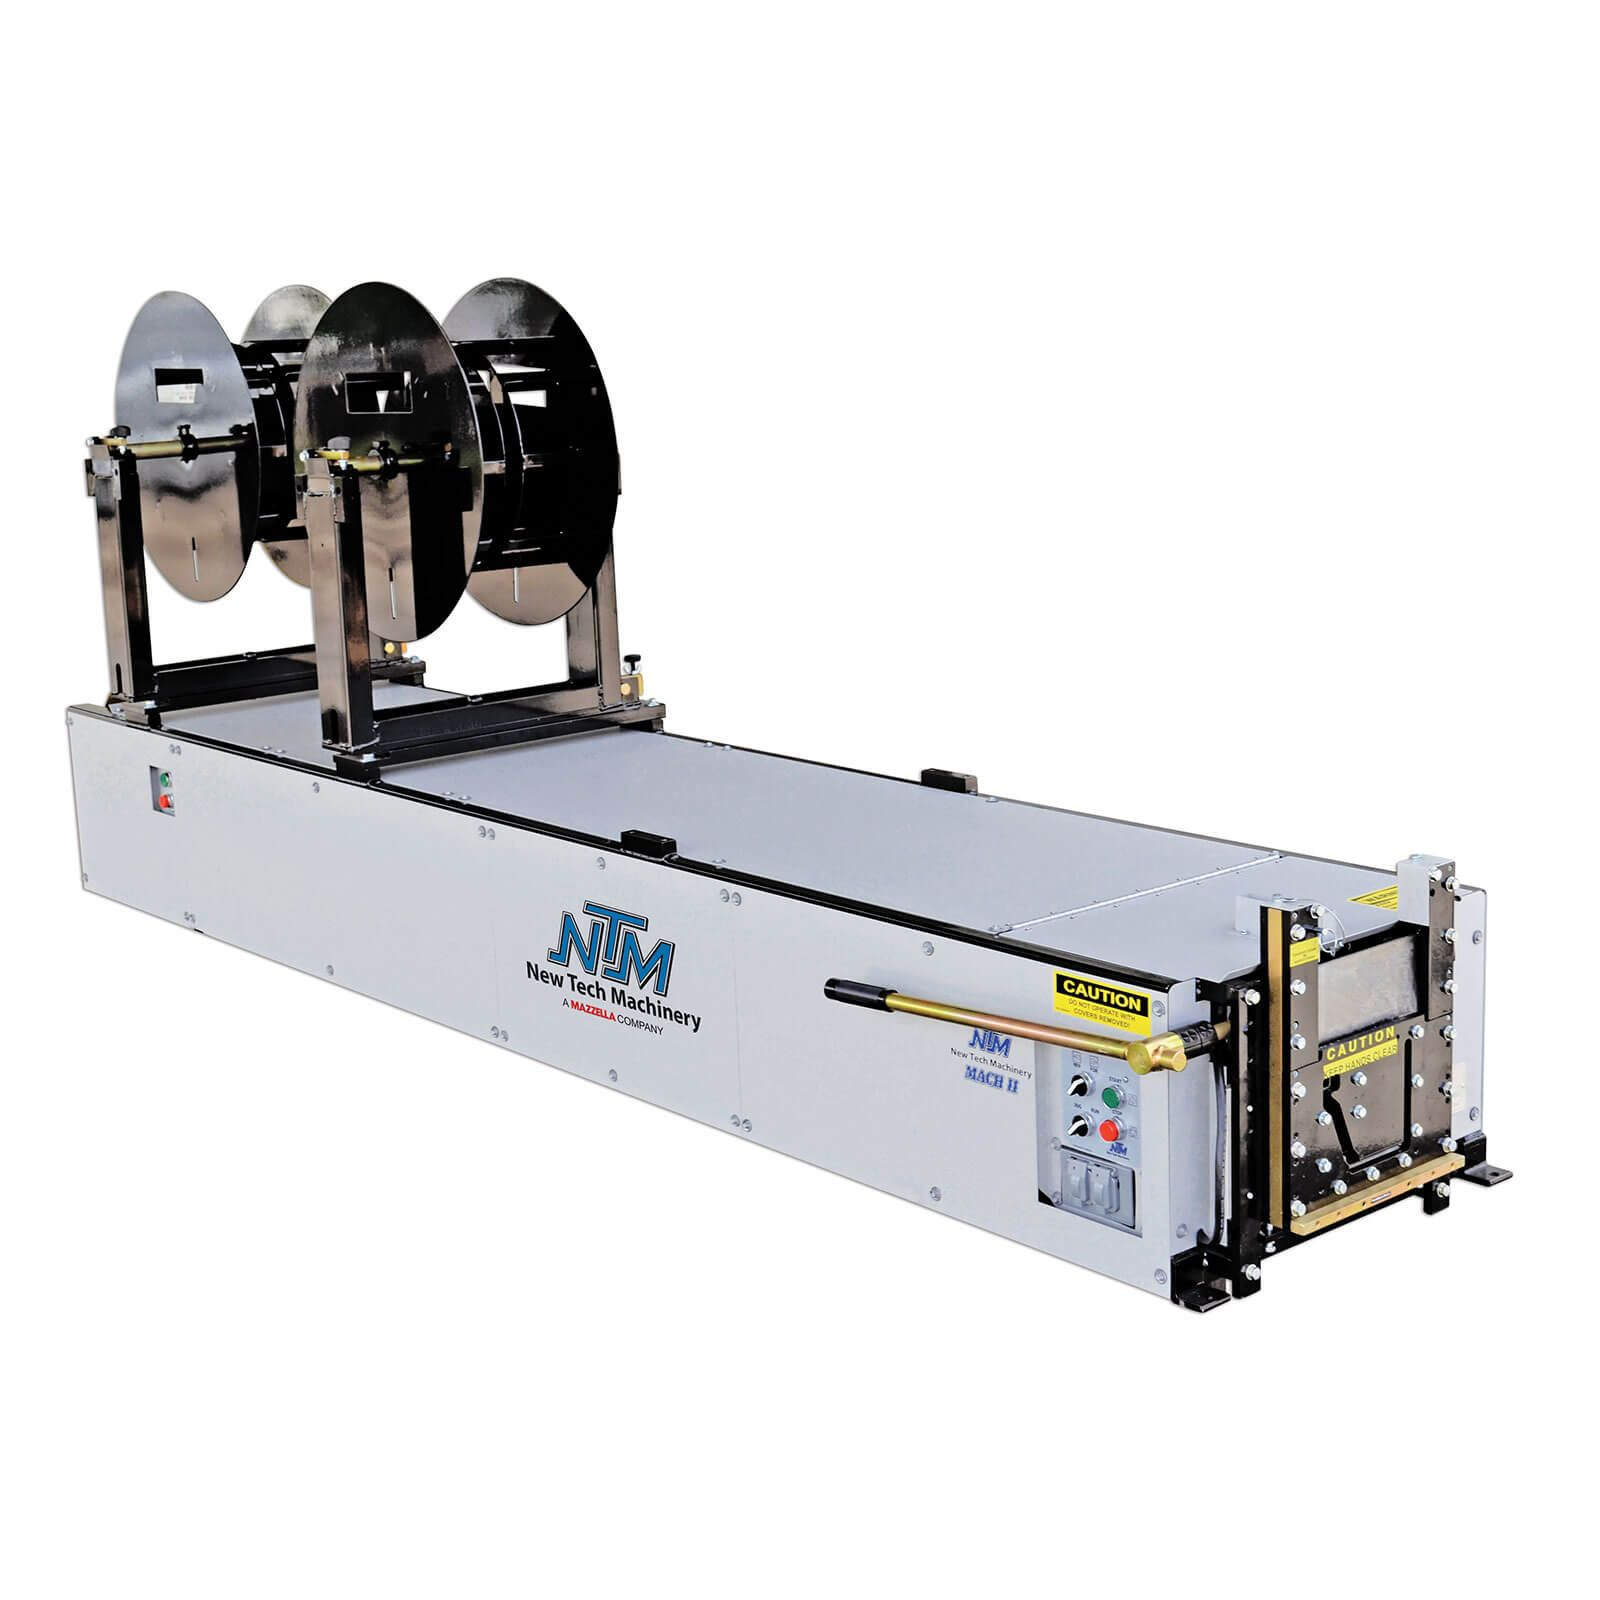 Ntm Combo 5 6 Mach Ii Gutter Machine Includes 2 Shears No Reels Or Stands 11 3 4in Gutter How To Install Gutters Gutters